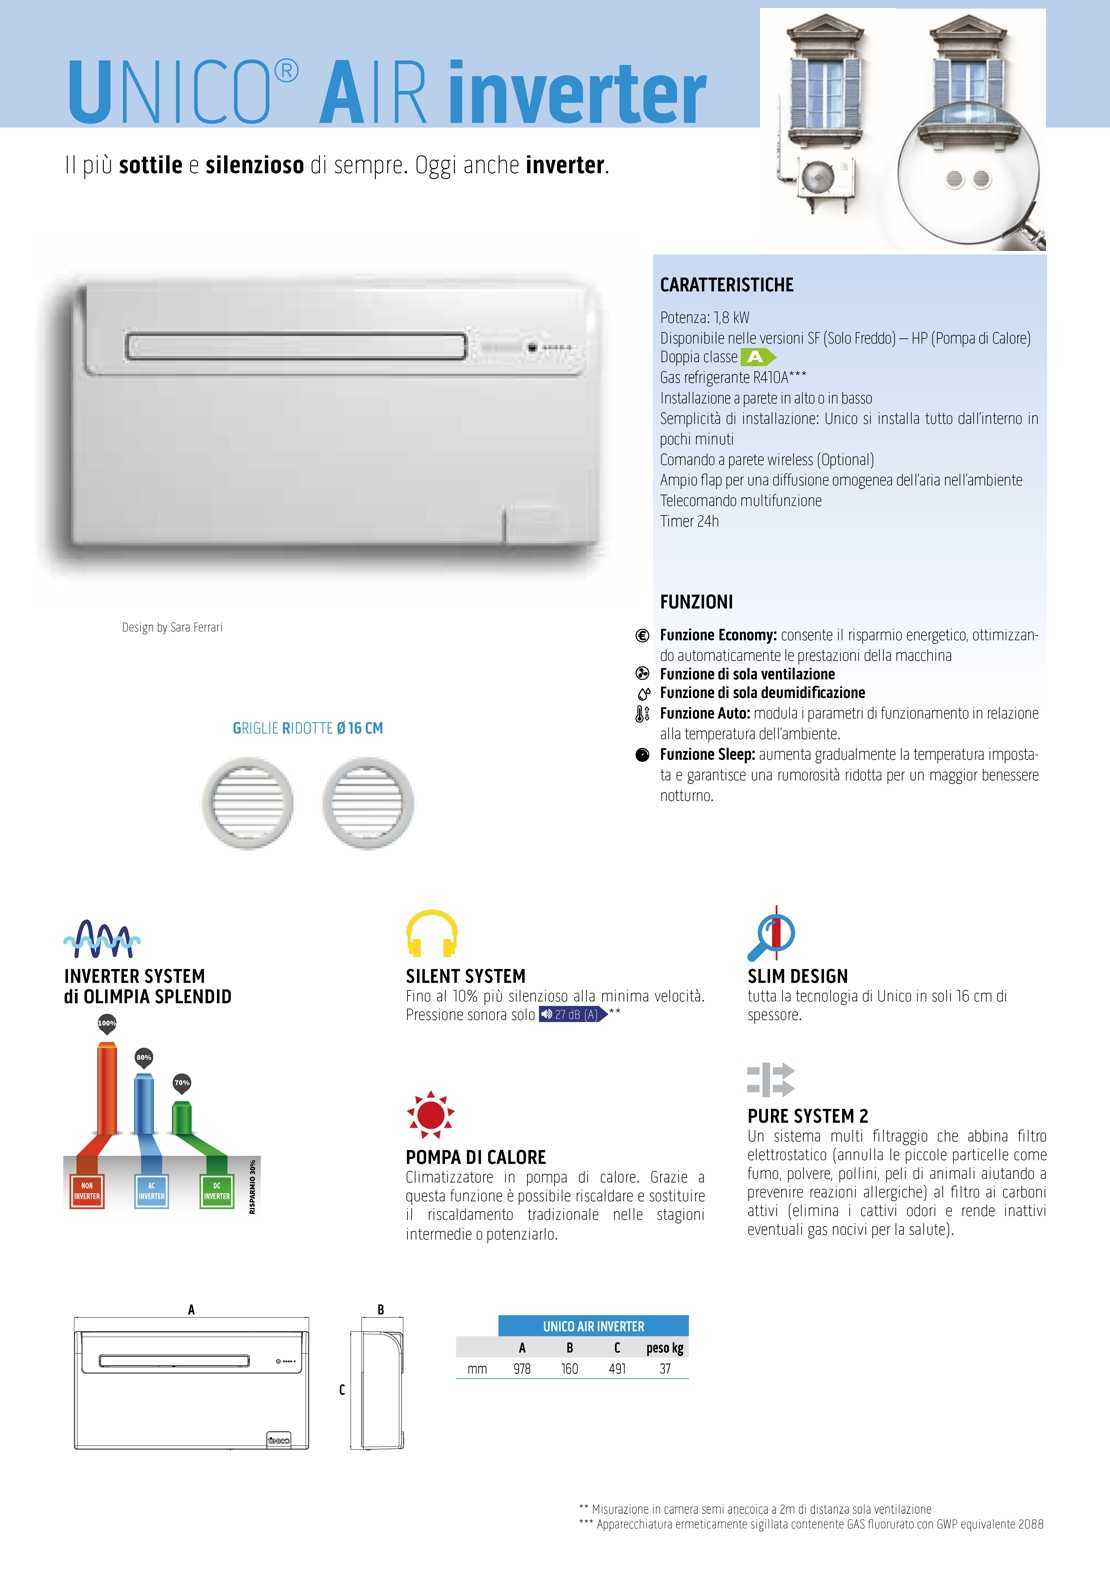 Olimpia Splendid Unico Air Inverter